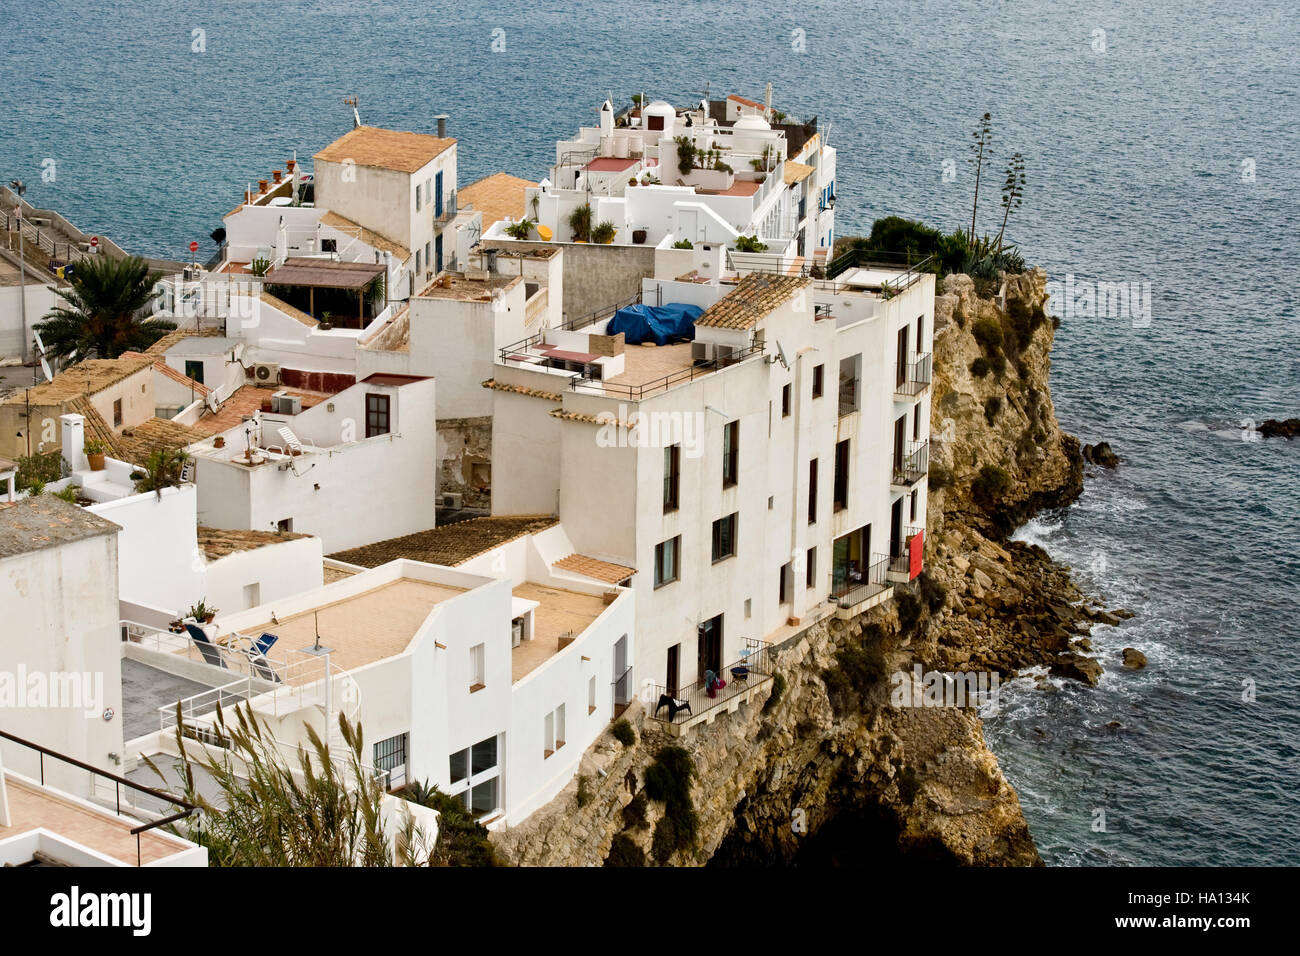 View of old city of Eivissa (Ibiza), whose houses are built on a spur of rock at the entrance of the port - Stock Image